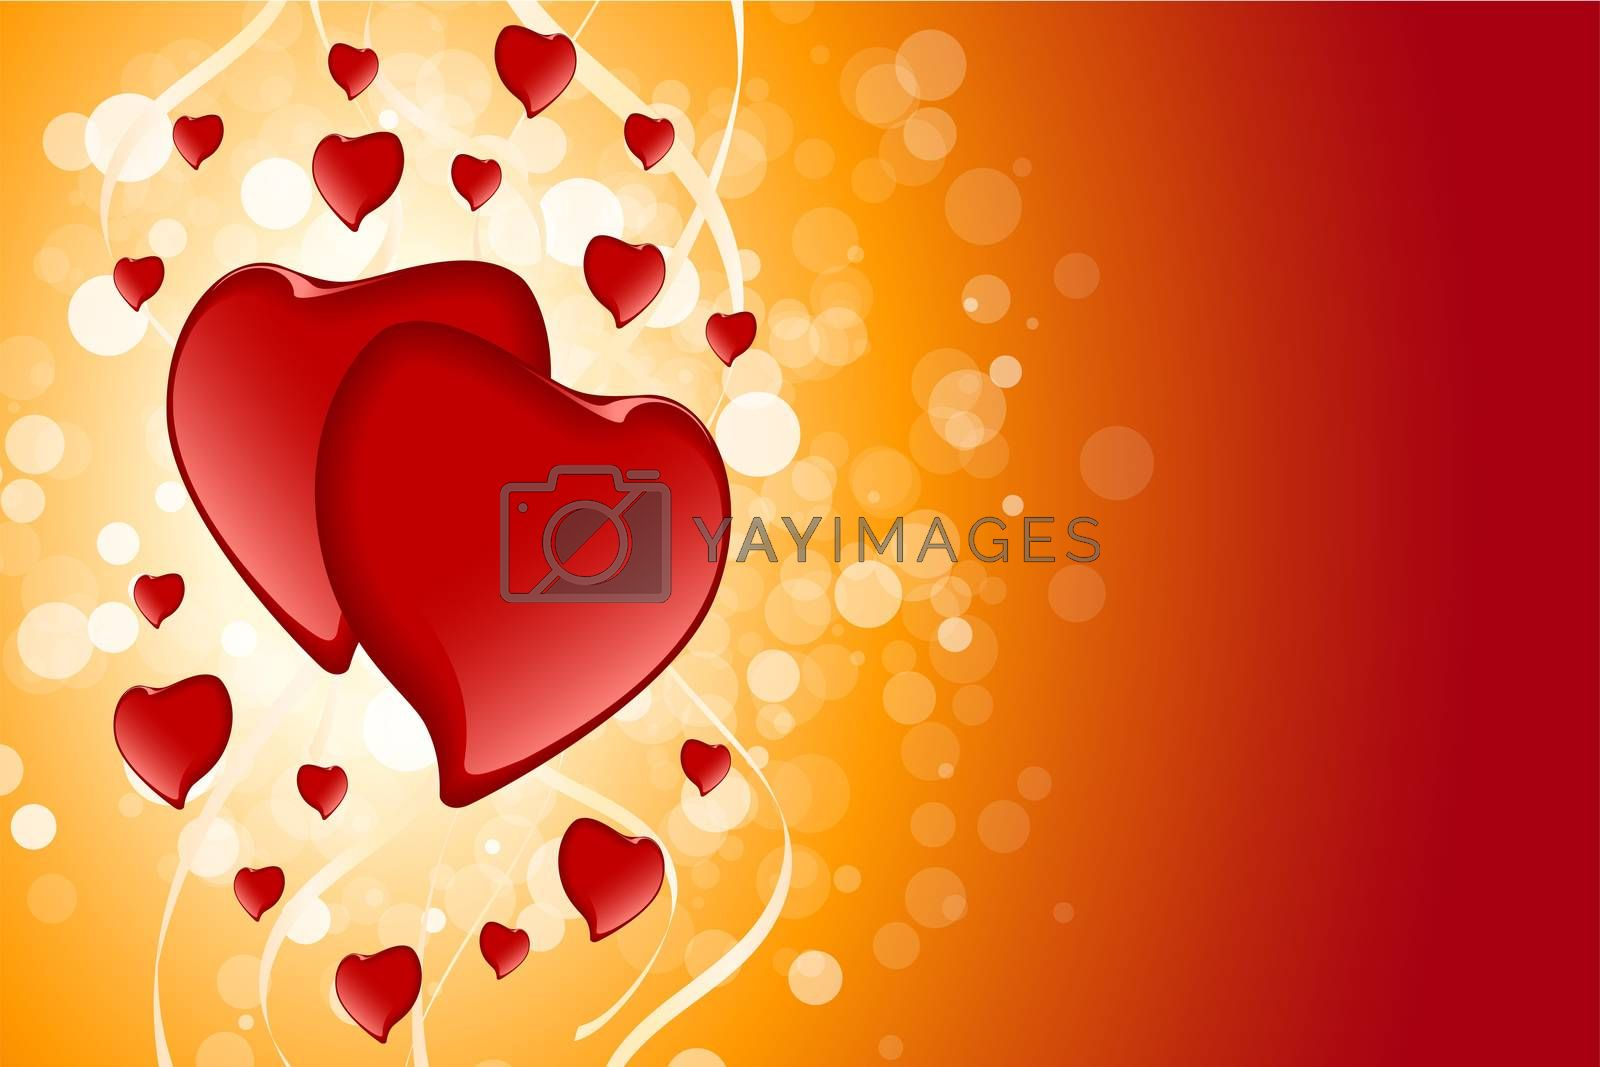 Abstract Valentines Day Card Template with Hearts and sparkle